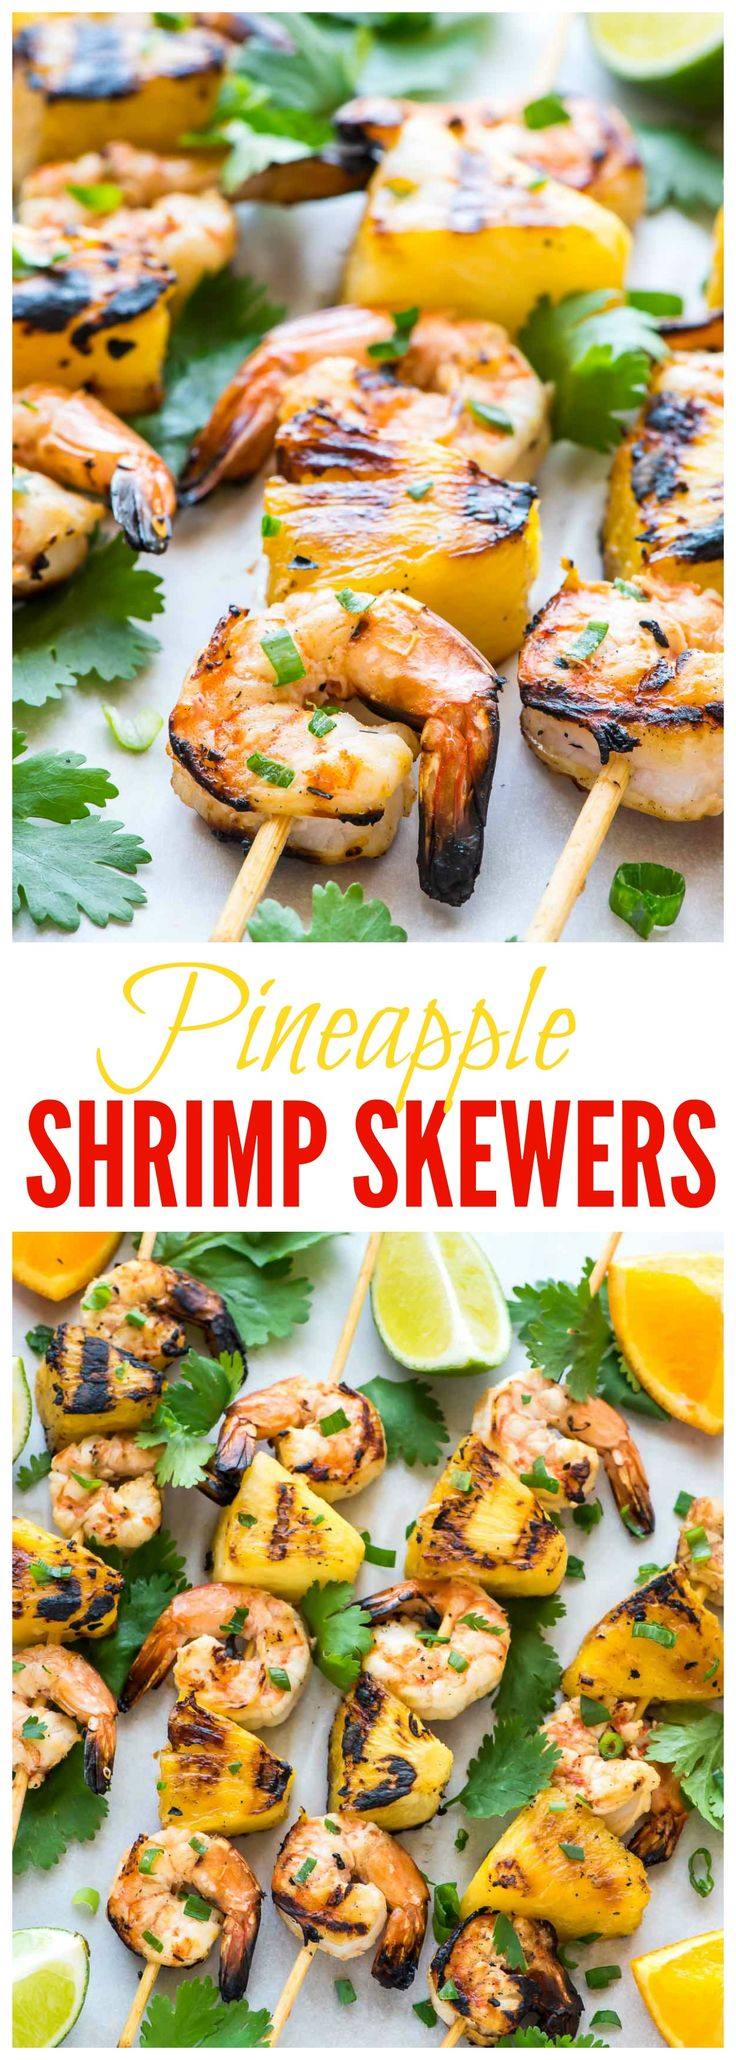 Coconut Pineapple Shrimp Skewers recipe — These shrimp kabobs are OUTSTANDING. By far the easiest, best way to cook shrimp! Perfect for summer grilling and parties.